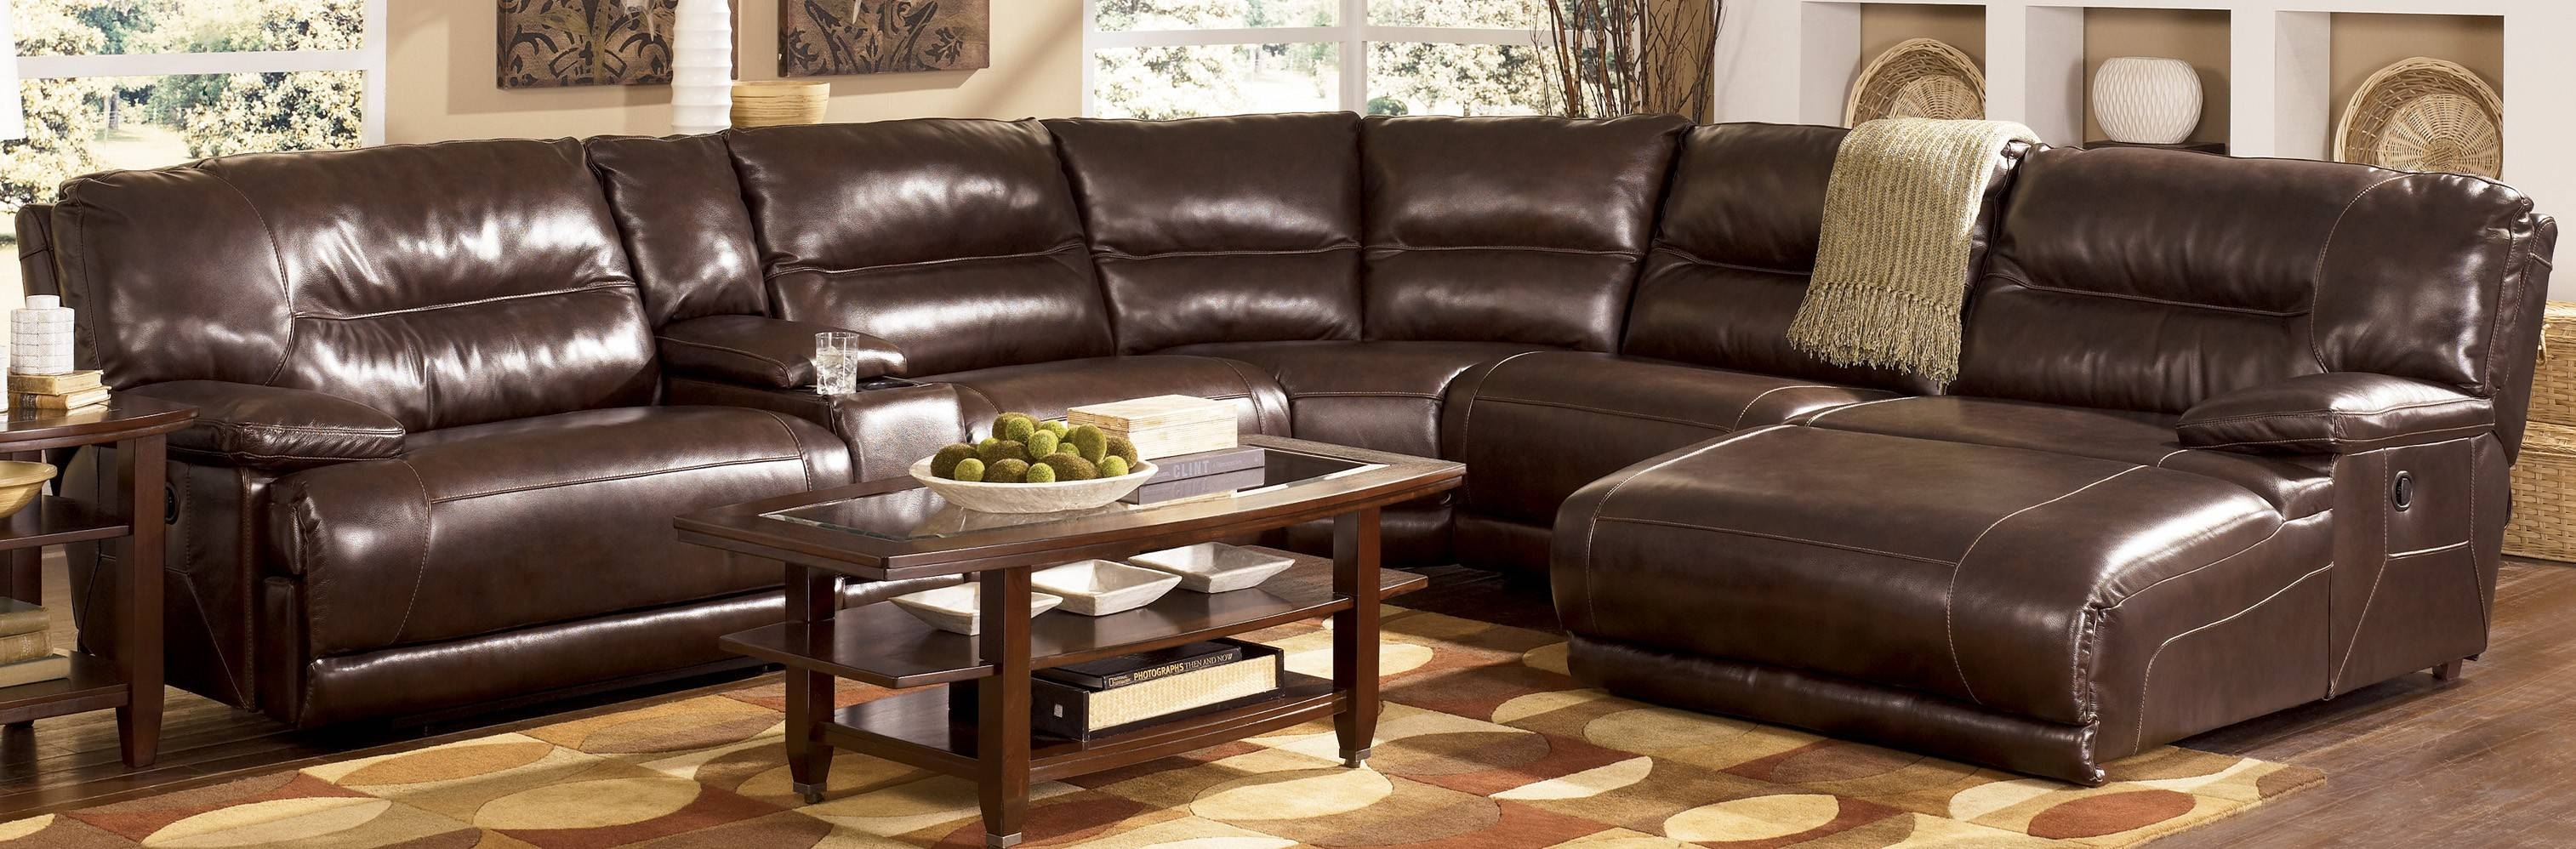 Stunning 6 Piece Leather Sectional Sofa 68 For Your Sectional pertaining to Leather Sectional Sofas Toronto (Image 18 of 25)